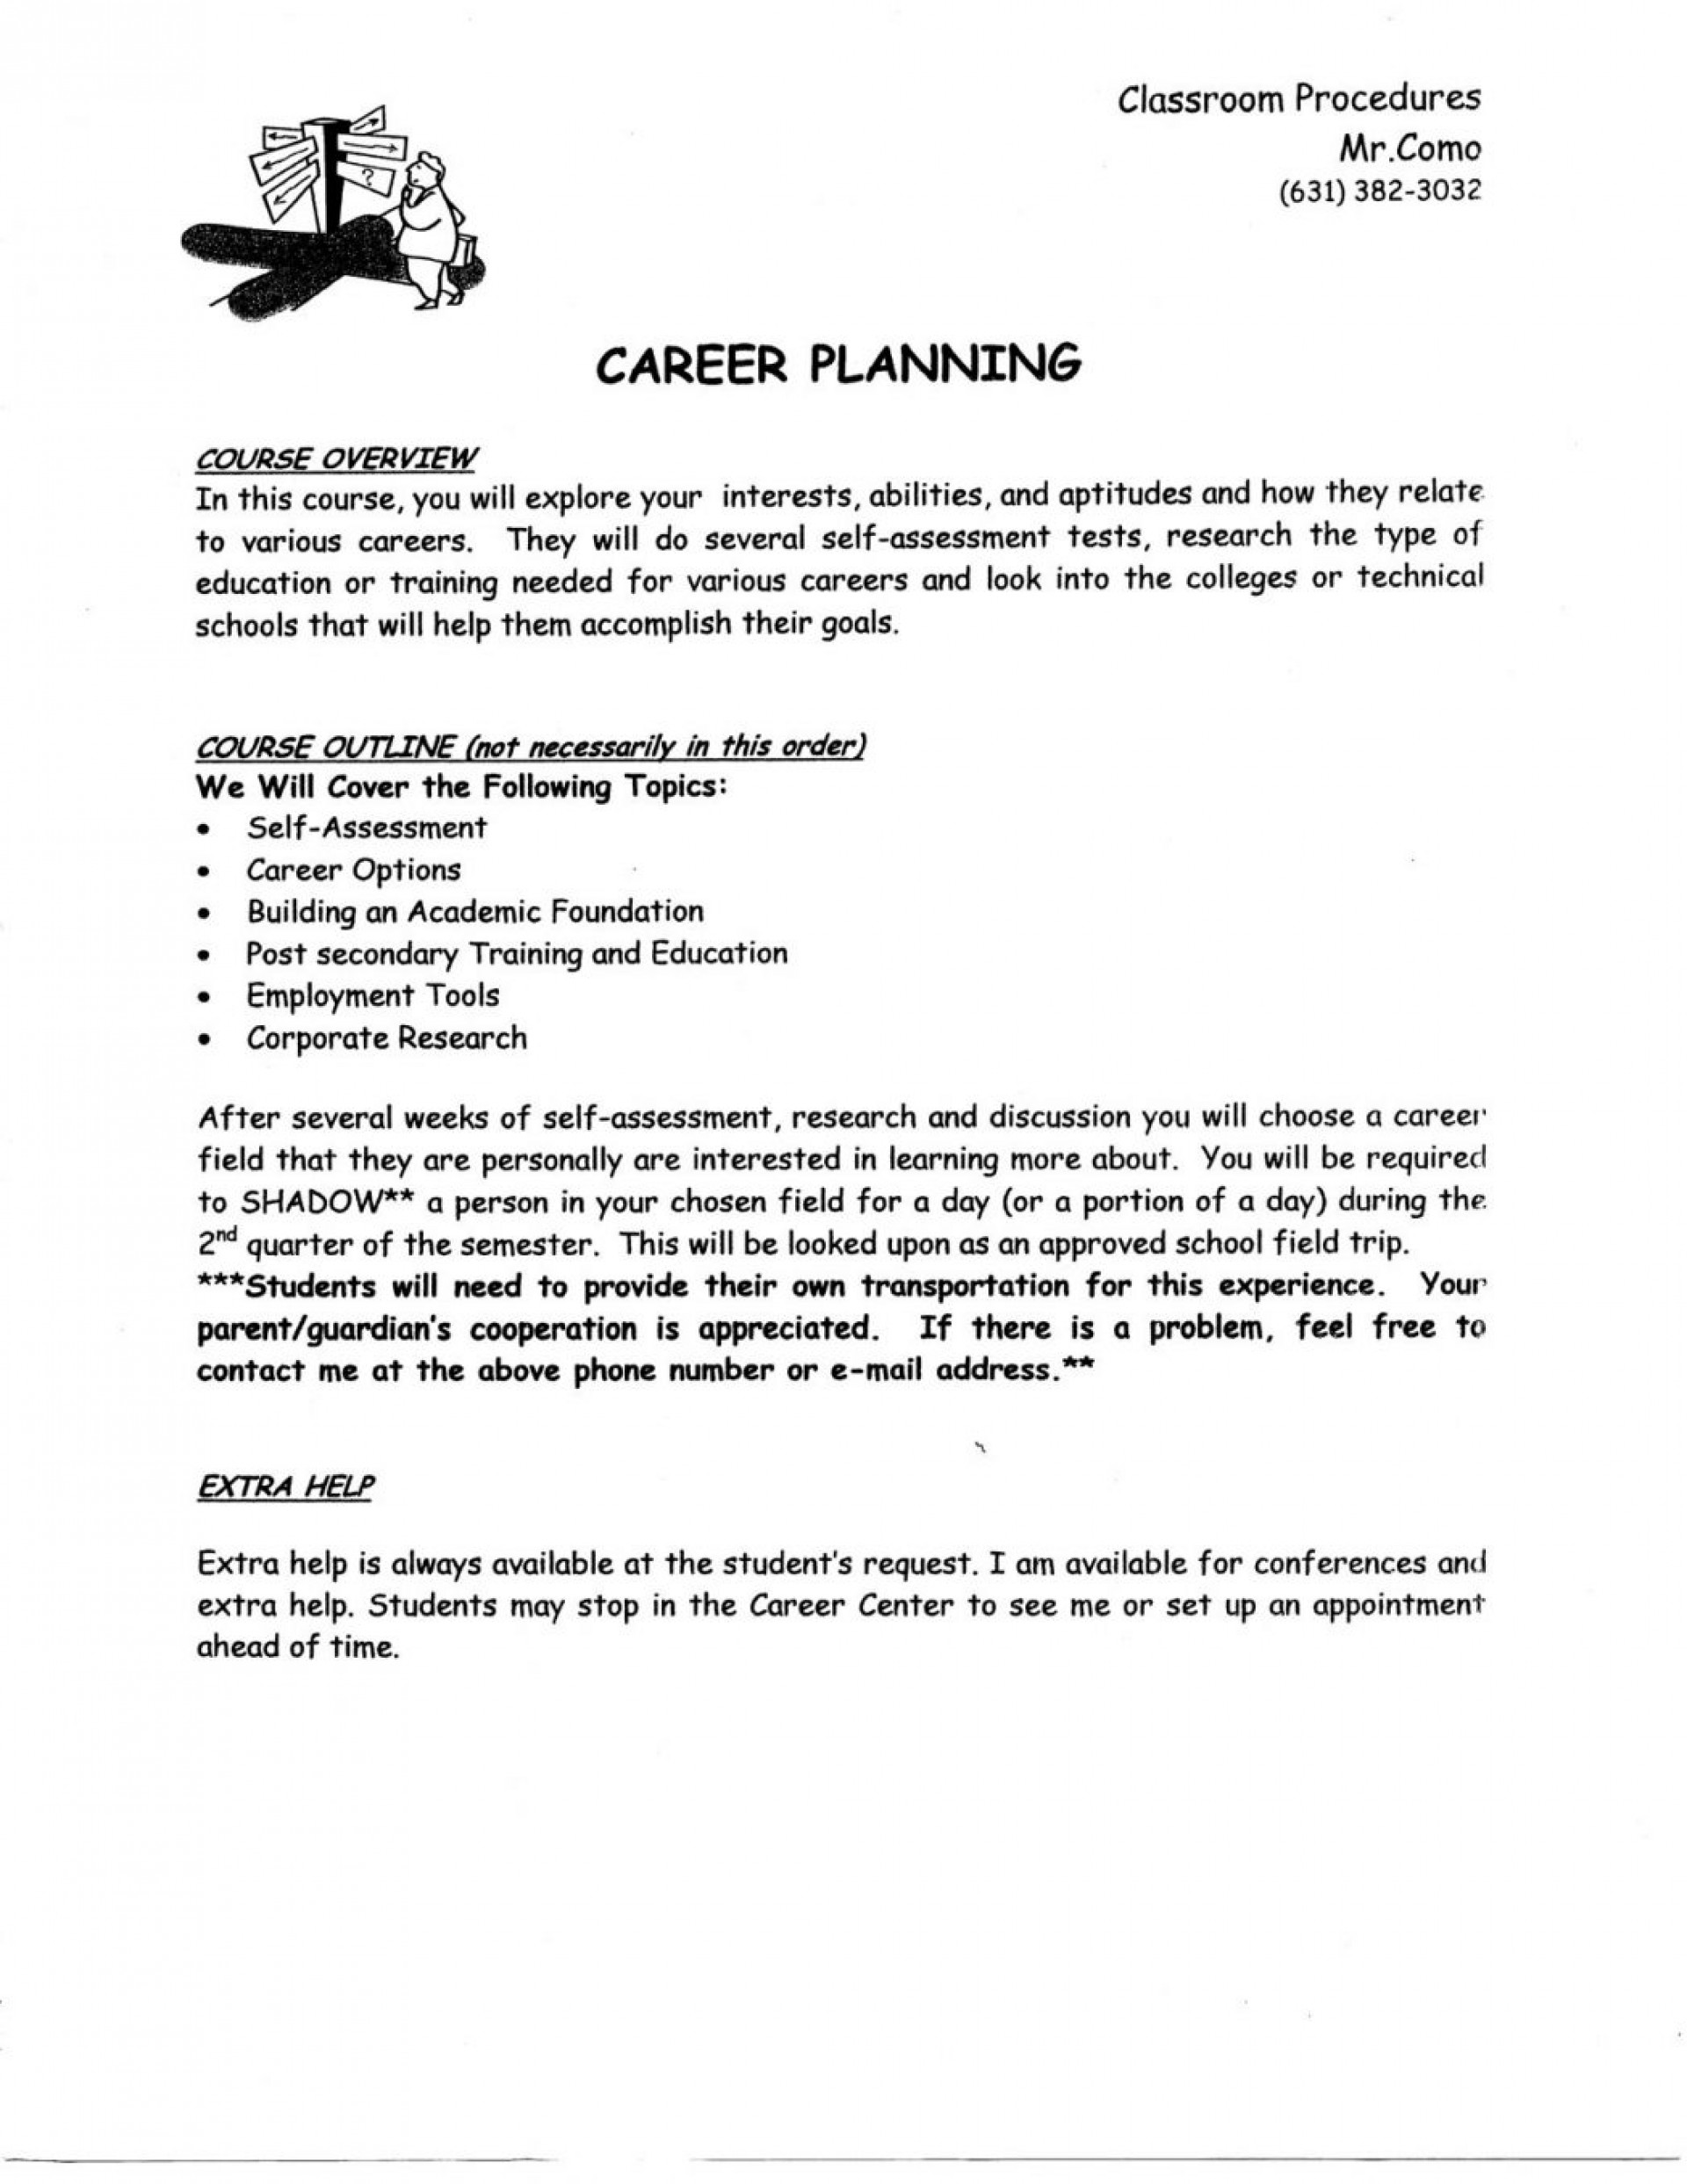 006 Future Plan Essay Plans Career After Graduation College Application Outline Format Planni Template Admission Layout Pdf 1048x1357 Impressive For Scholarship Sample Ielts Conclusion 1920